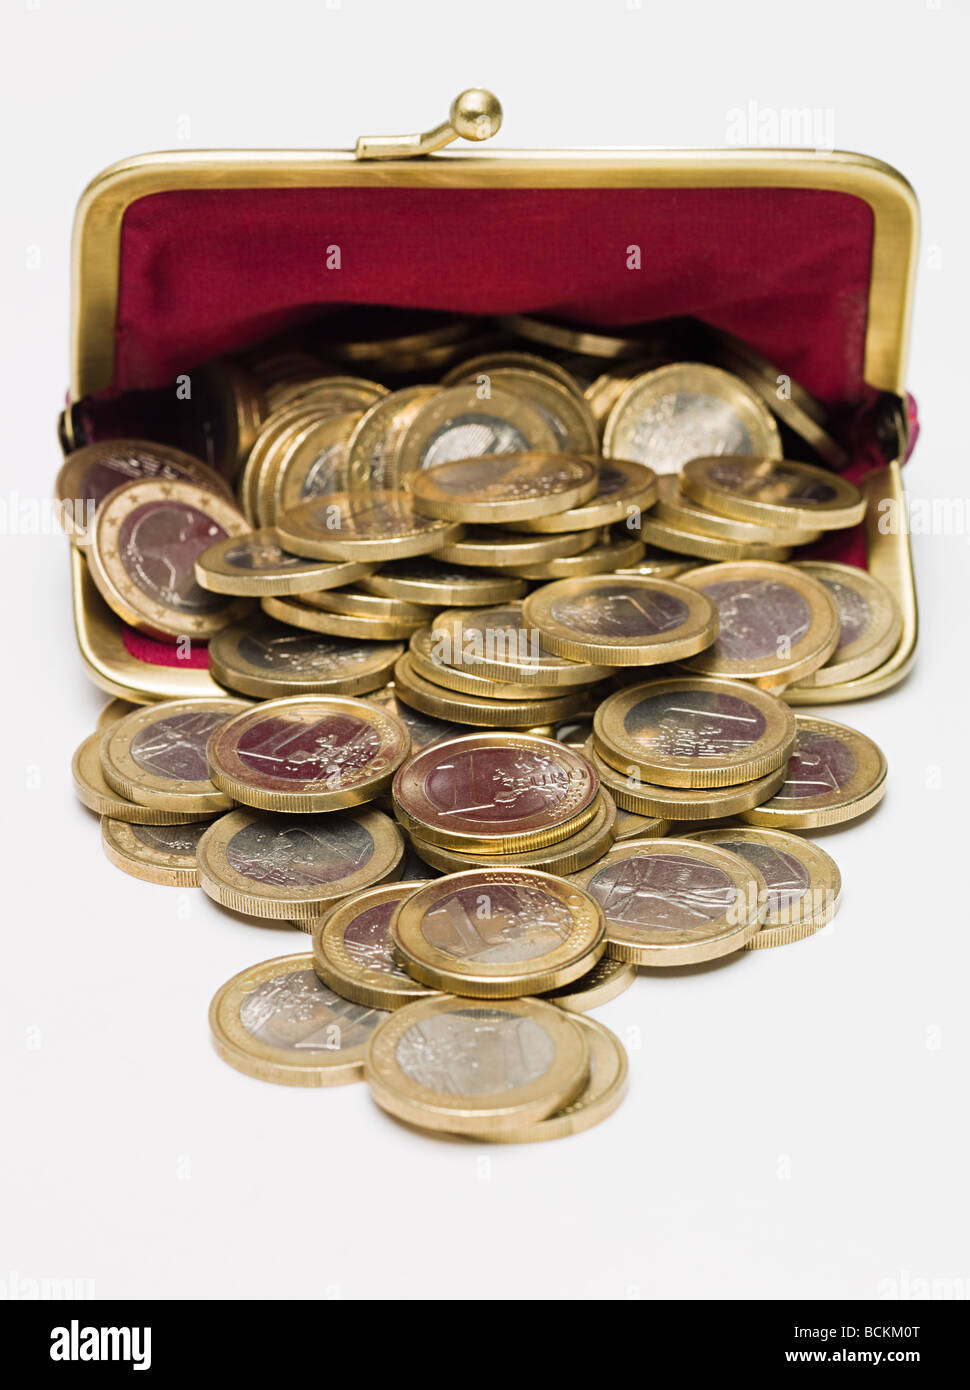 Euro coins in a purse - Stock Image